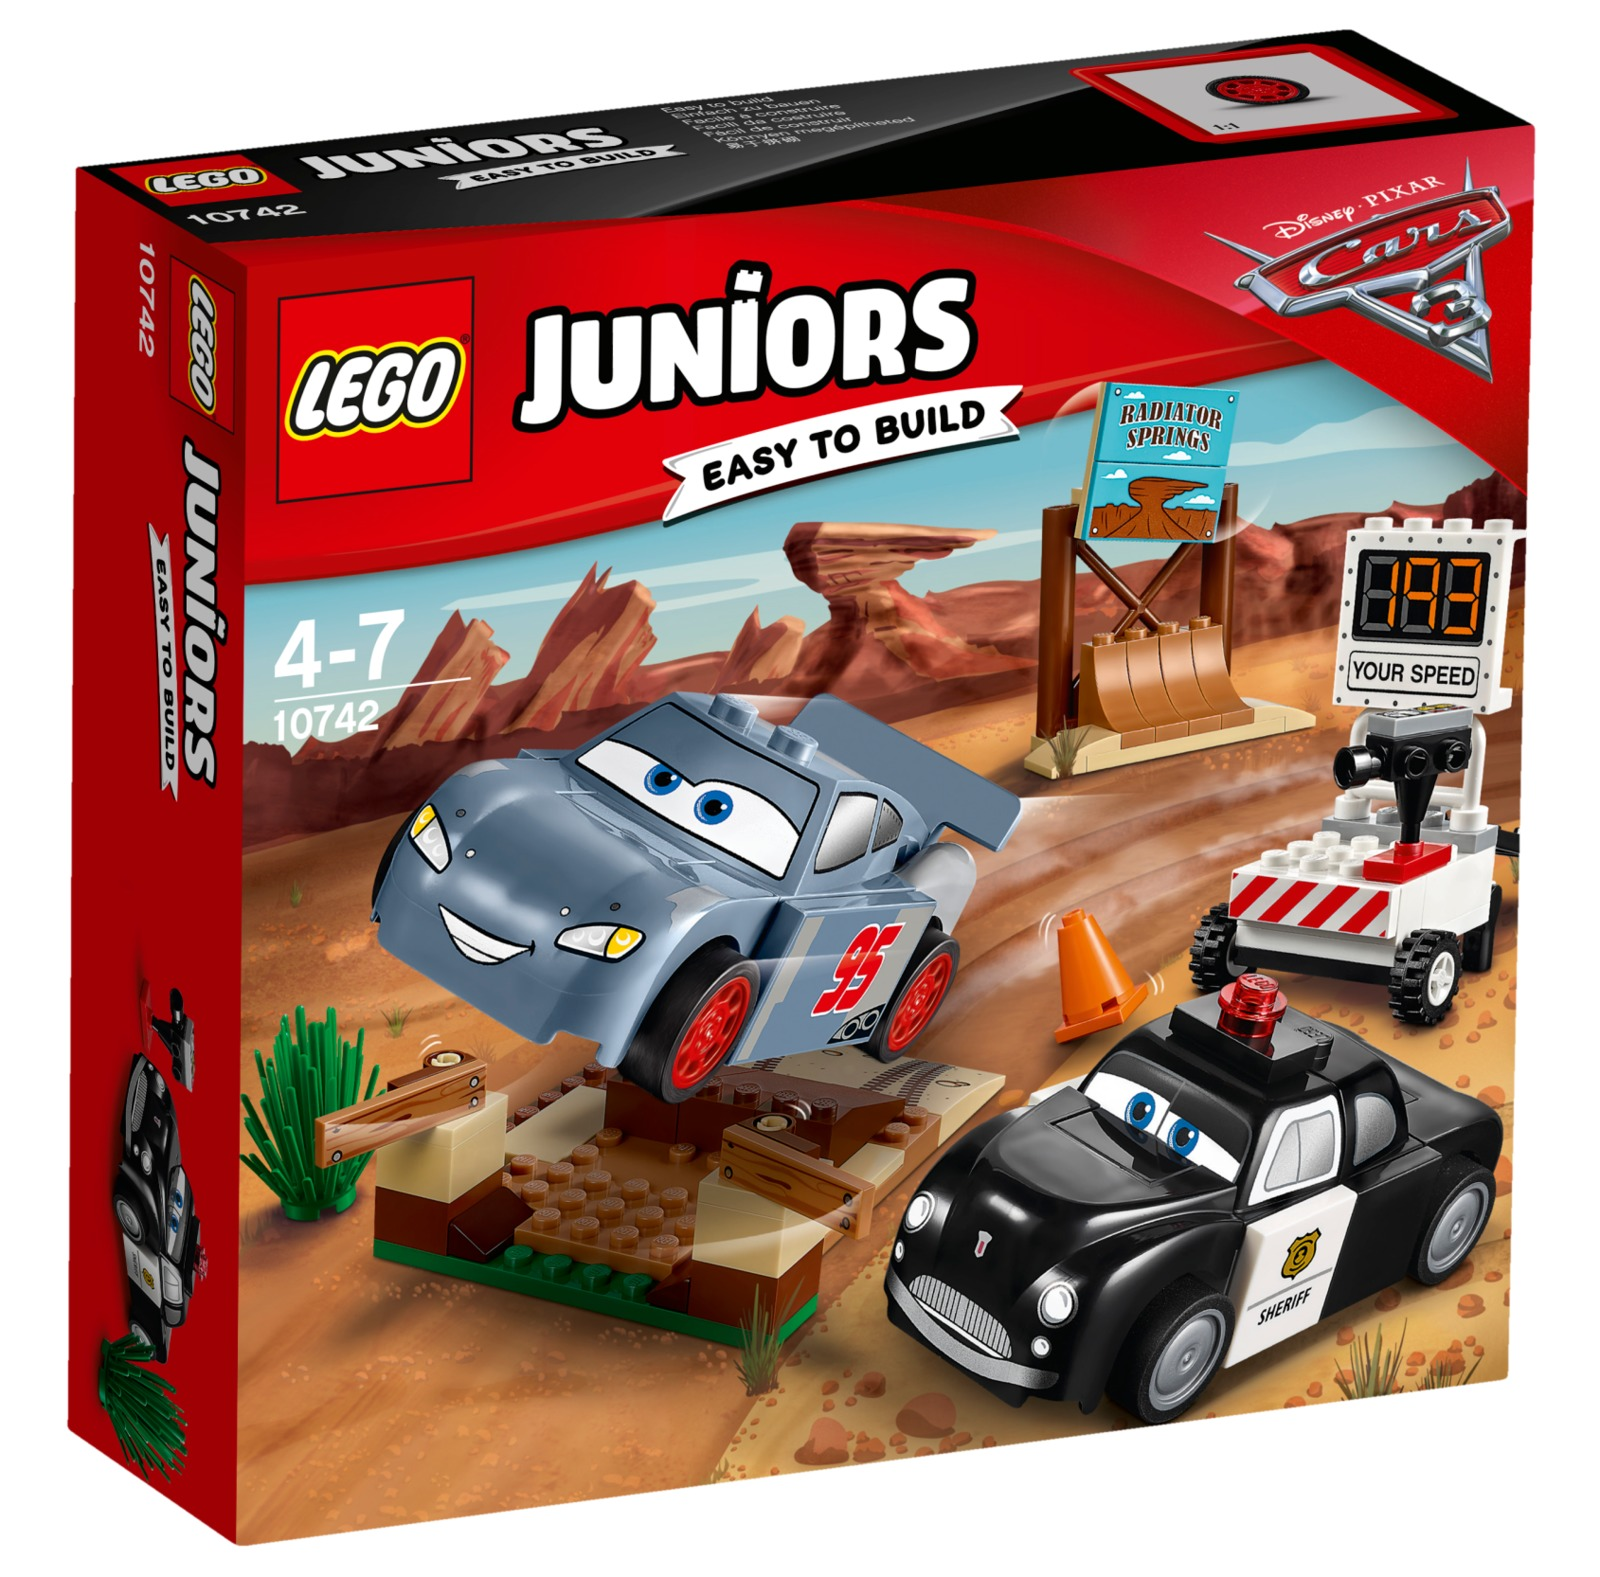 LEGO Juniors - Willy's Butte Speed Training (10742) image